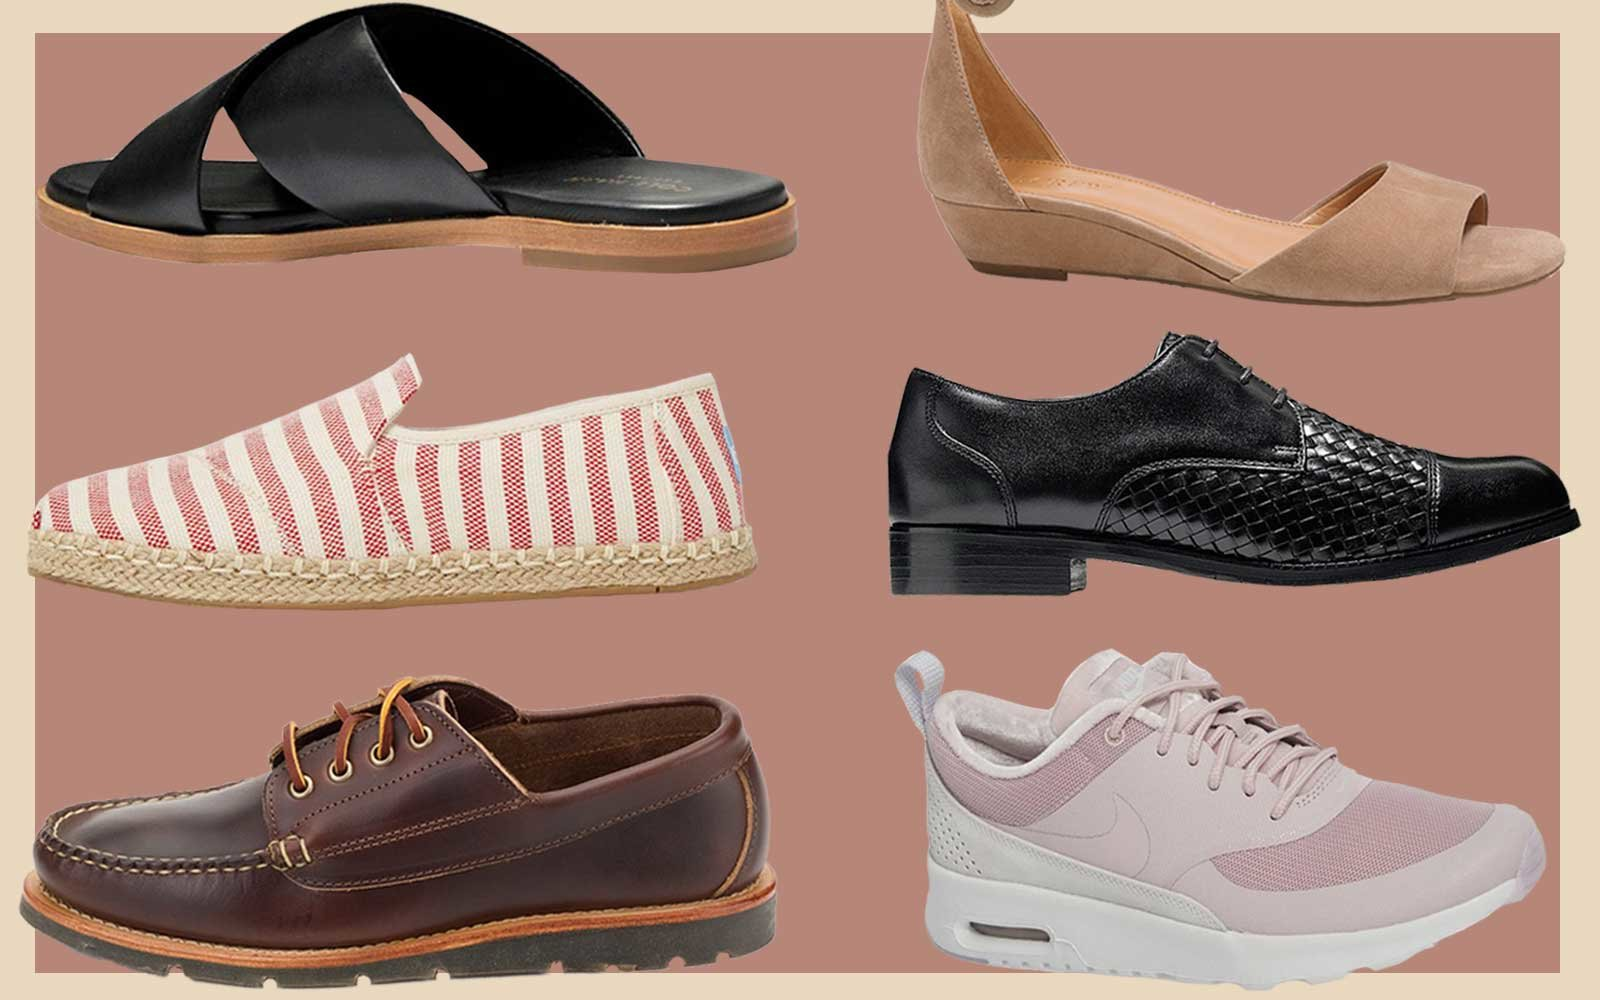 23 Pairs of Travel Shoes Travel + Leisure Editors Always Pack